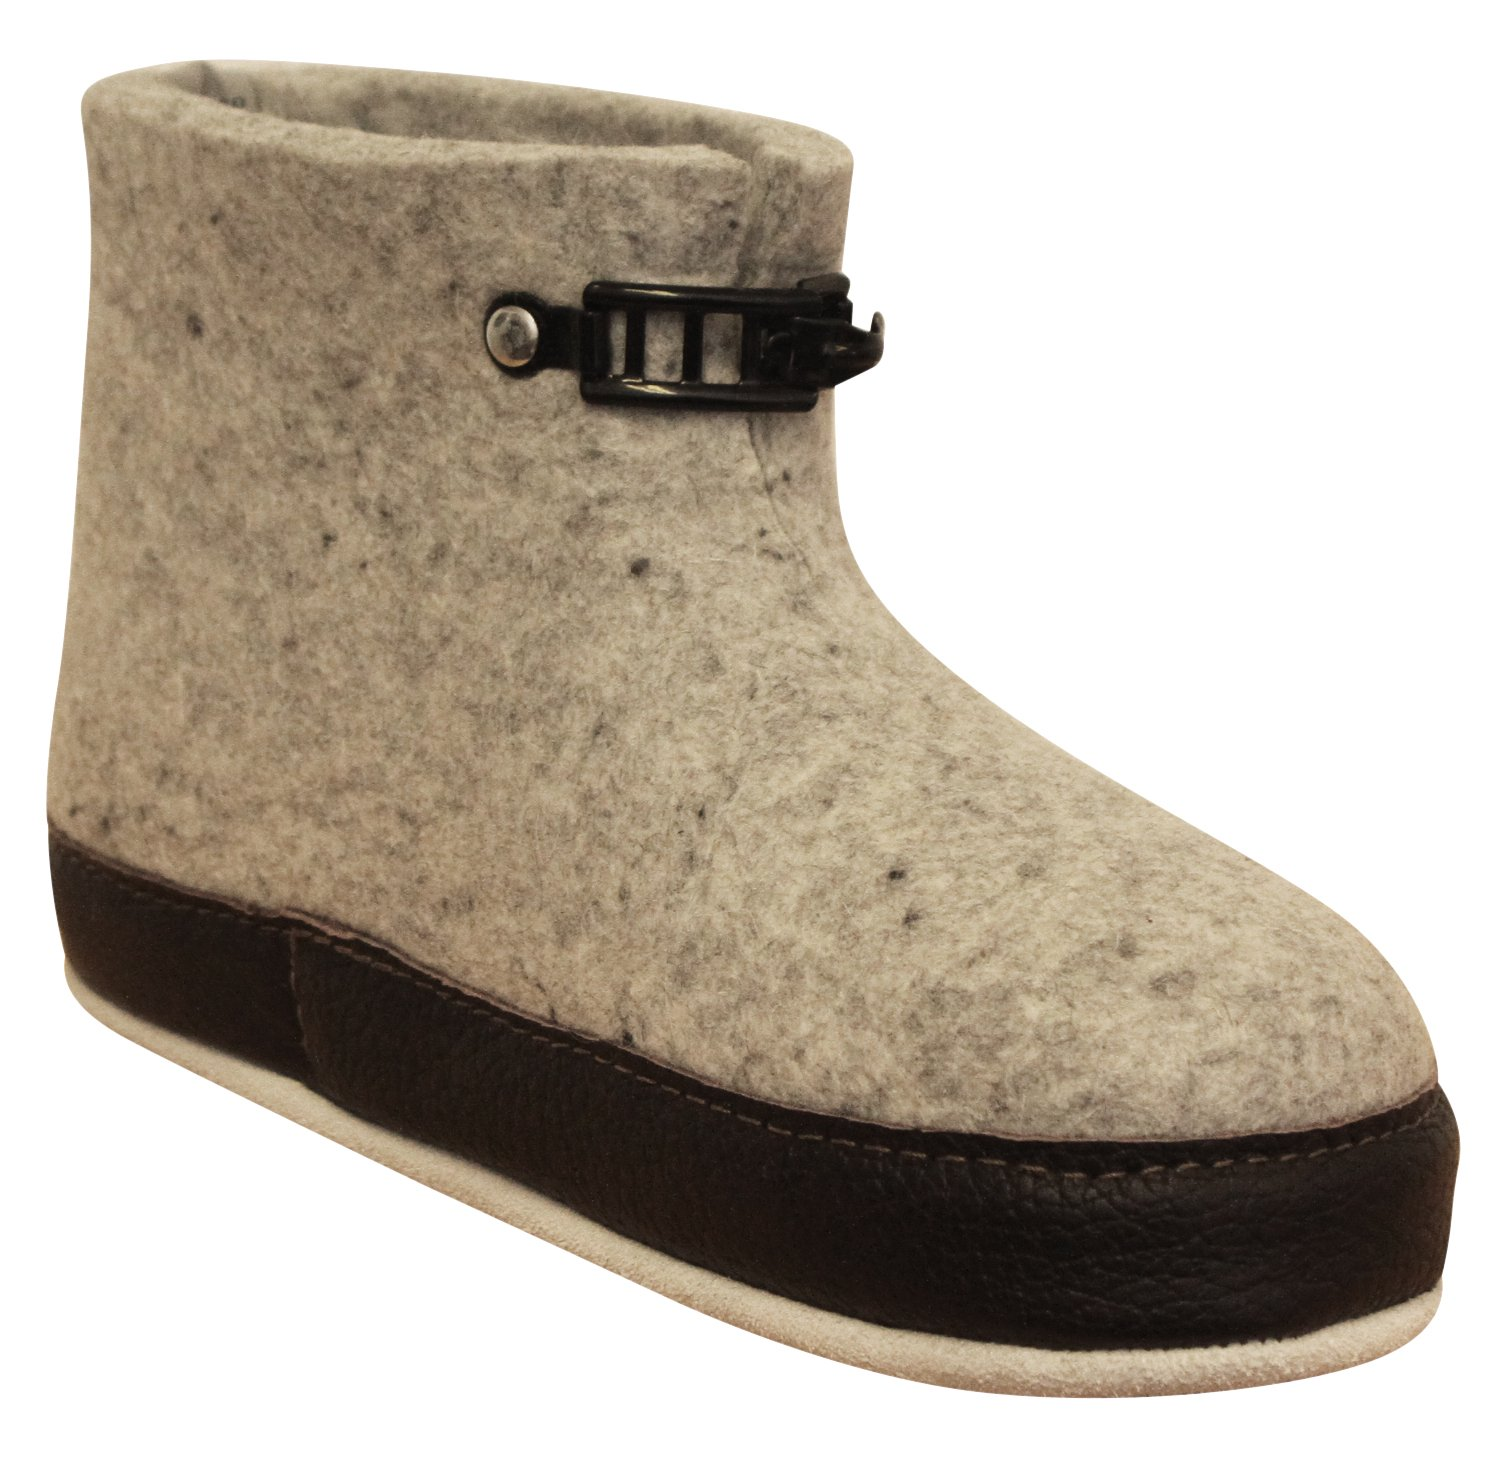 Askeland Farm - Tova Handmade Boiled Wool Slippers for Men and Women Exclusive Indoor Grey Norwegian House Shoes by Askeland Farm - Tova (Image #3)